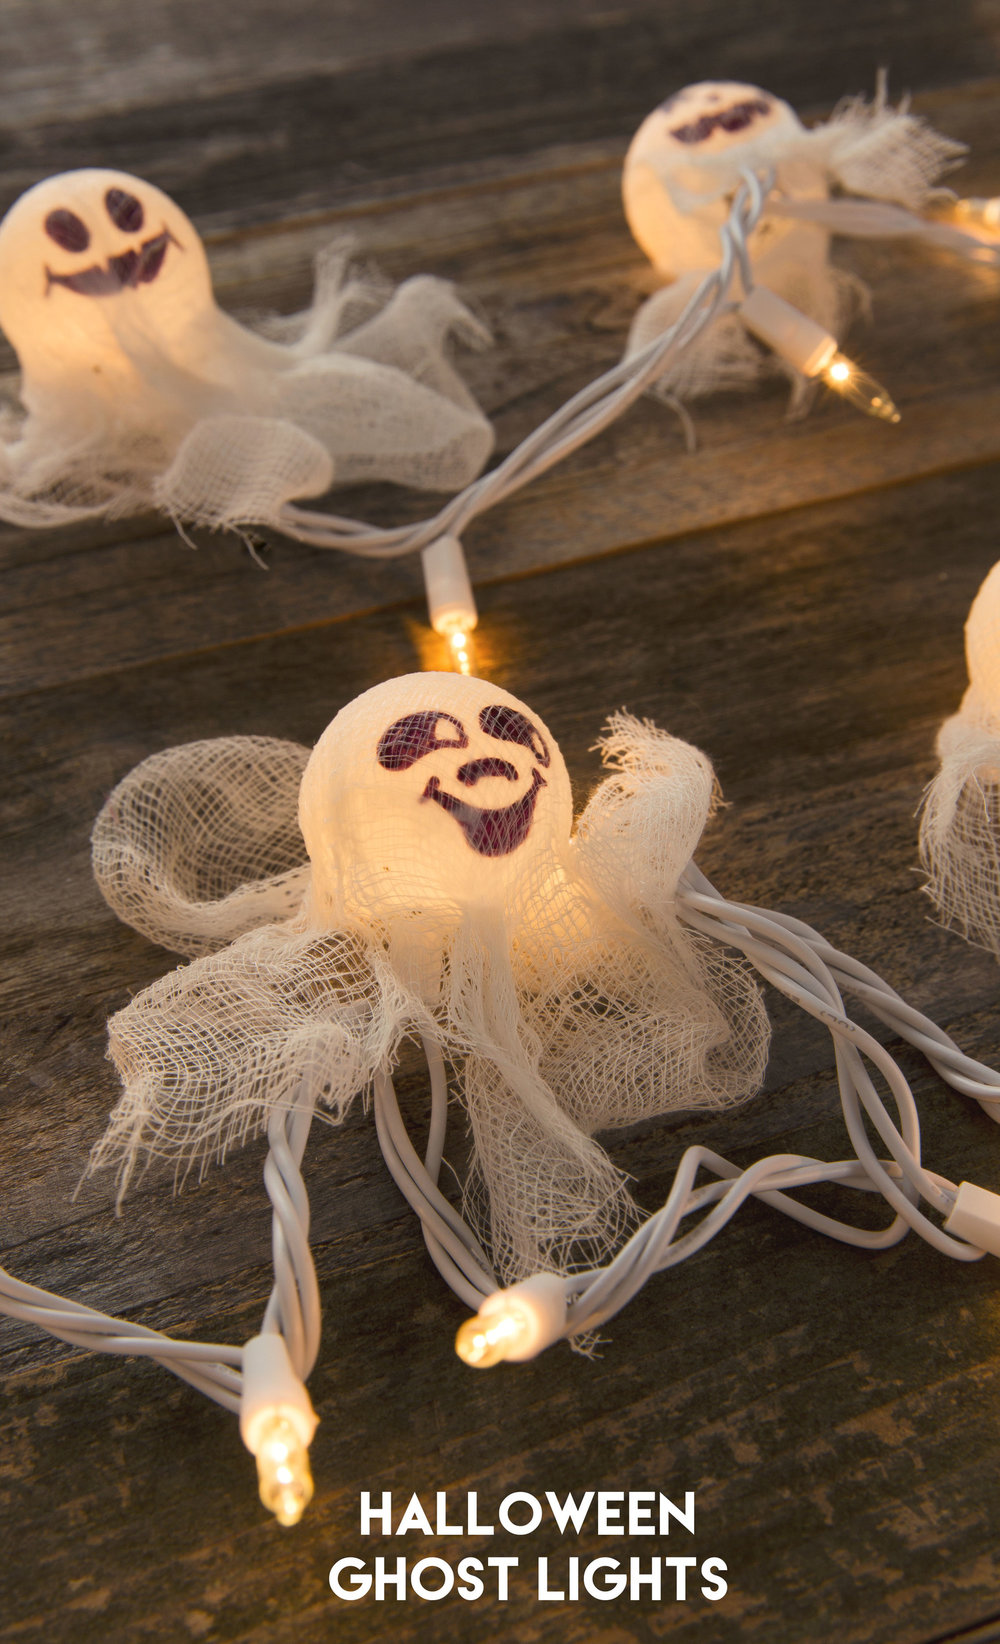 Halloween Ghost Lights - so cute!